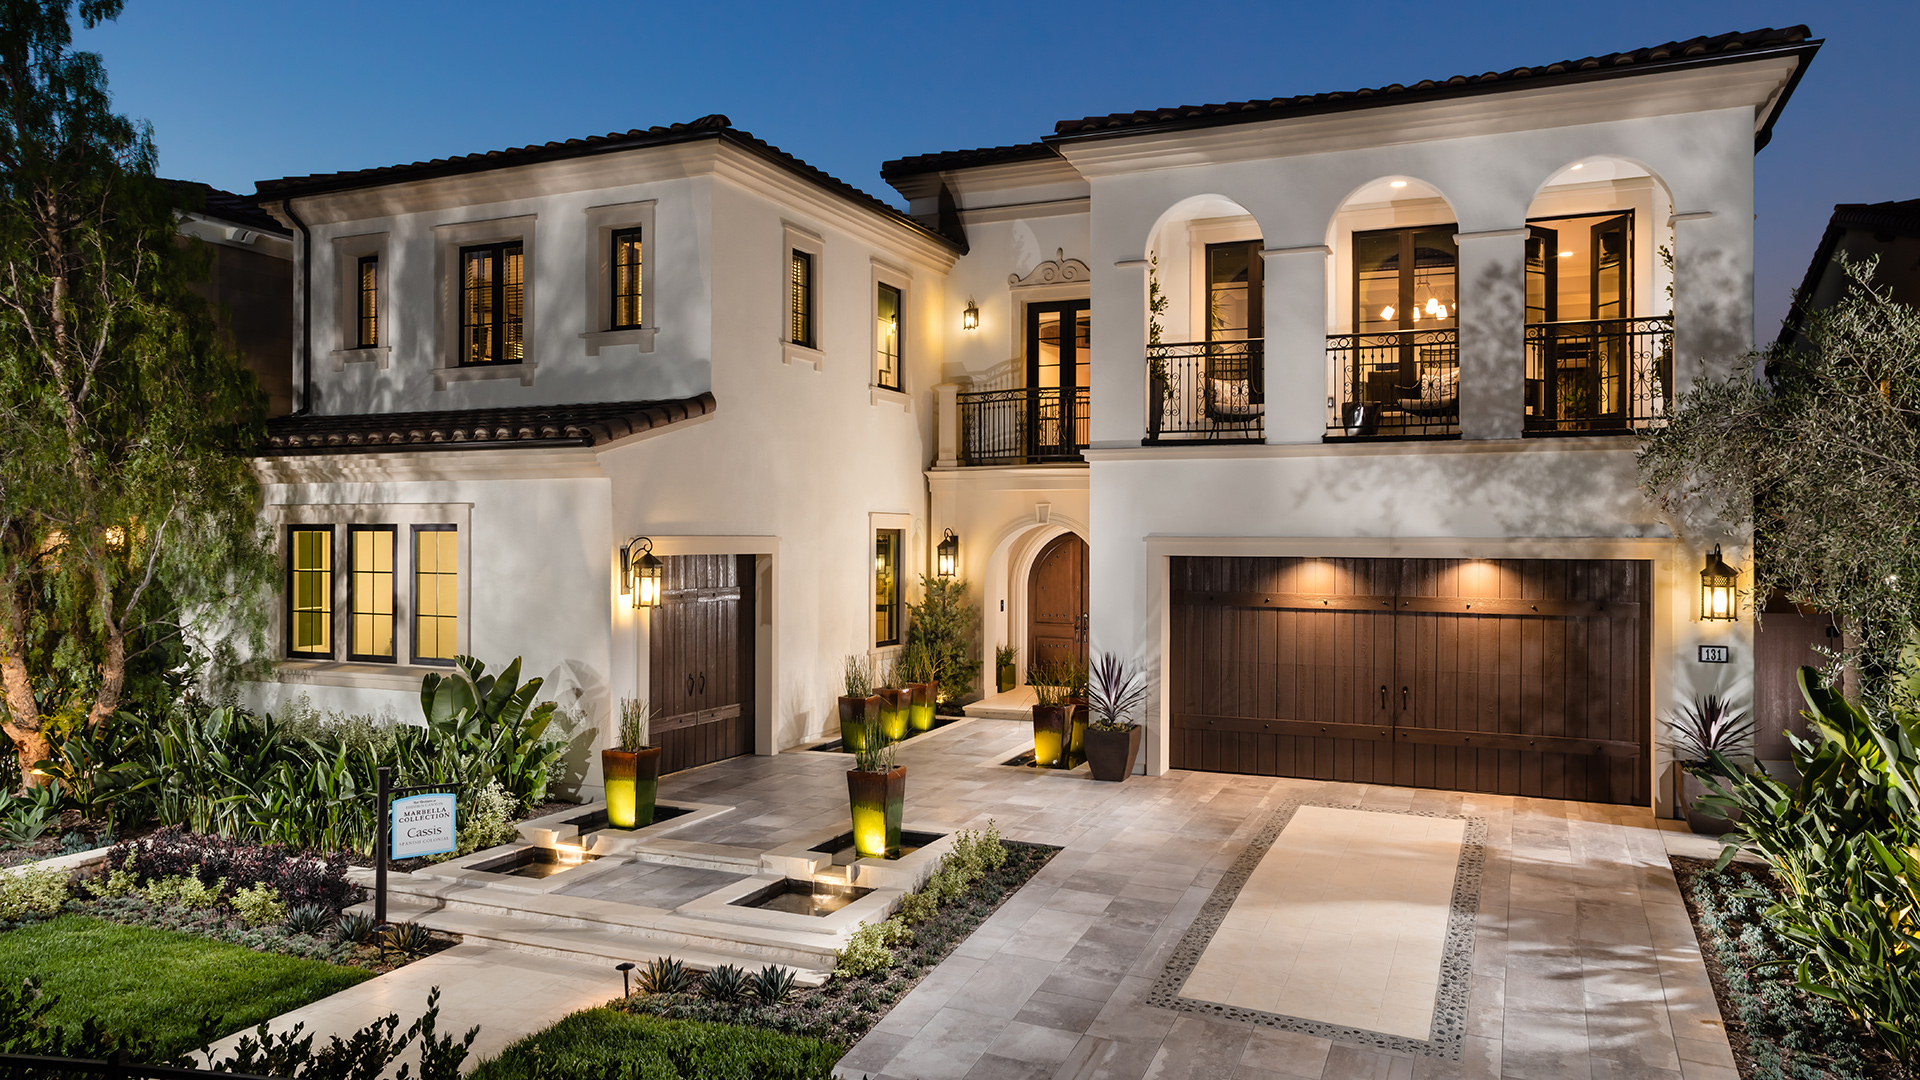 Toll brothers at hidden canyon marbella collection the for Luxury home models